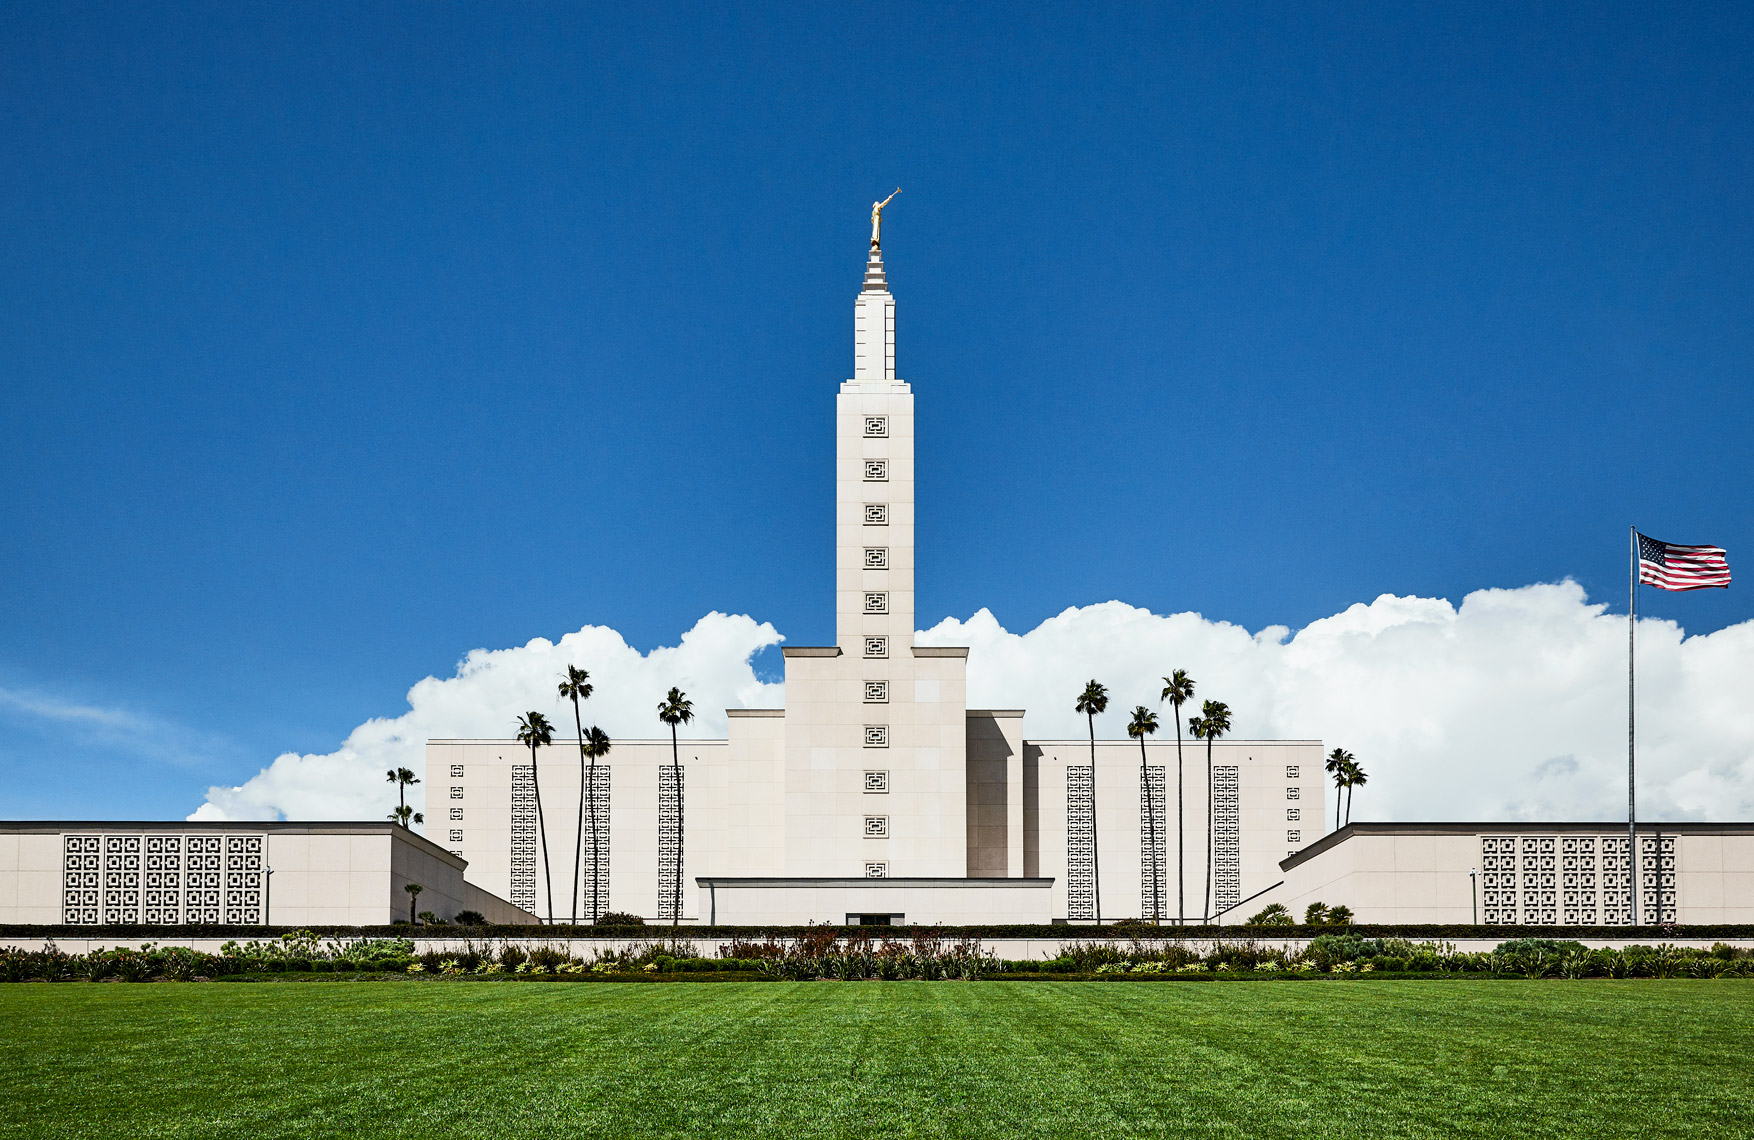 Church_of_Jesus_Christ_of_Latter_Day_Saints architecture architecture_photographer architecture_photography los_angeles_architecture_photographer